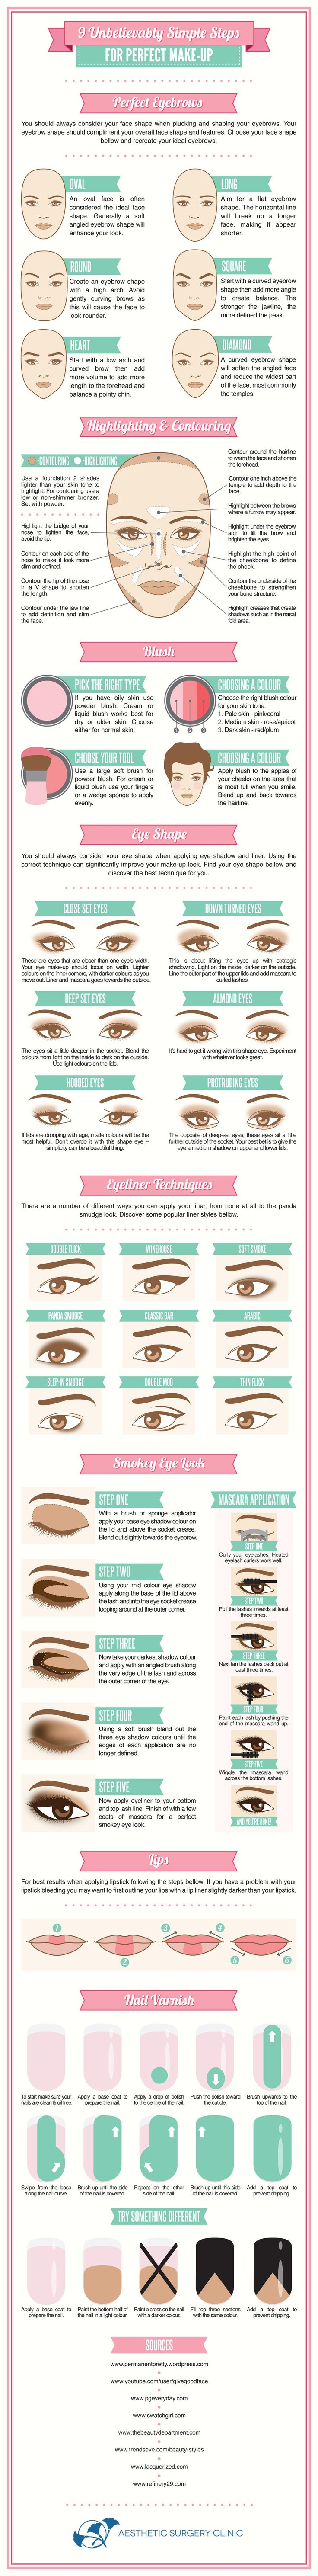 Infographic helps you master the perfect make-up | Stylist Magazine